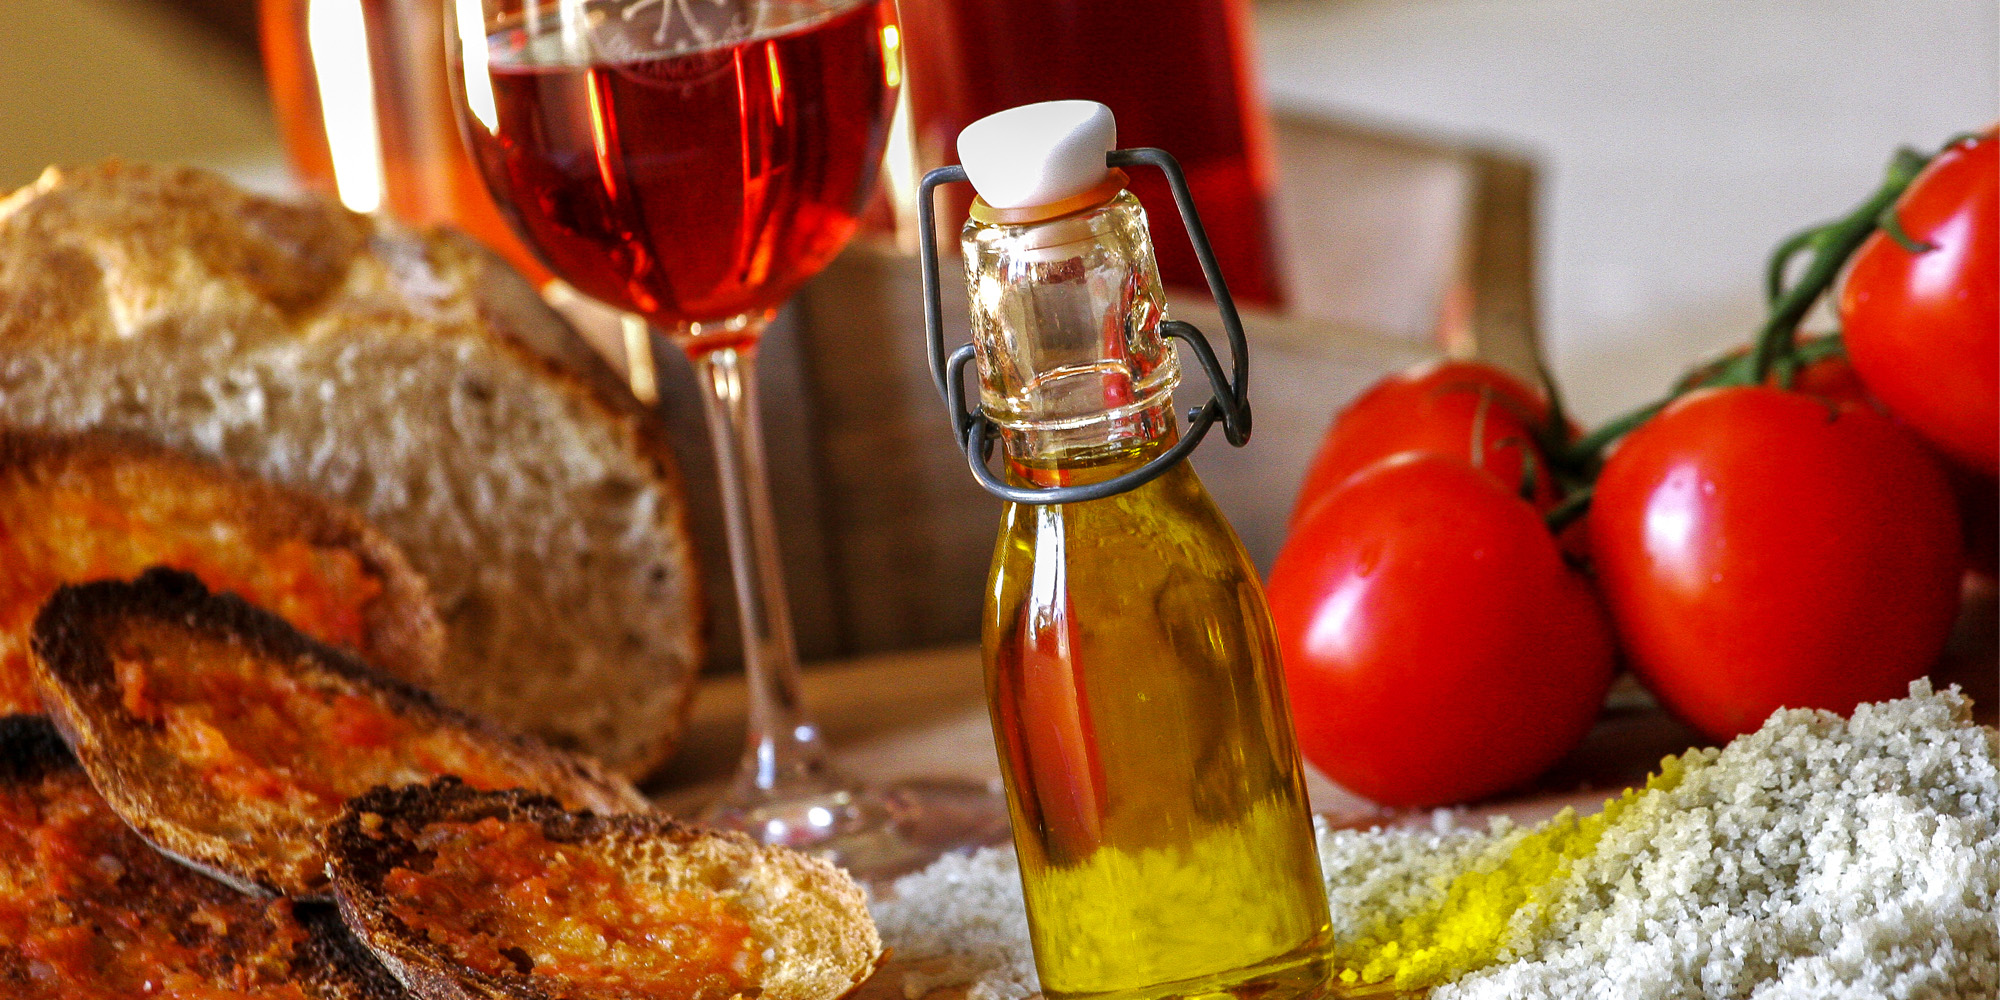 Tomatoes and Oil